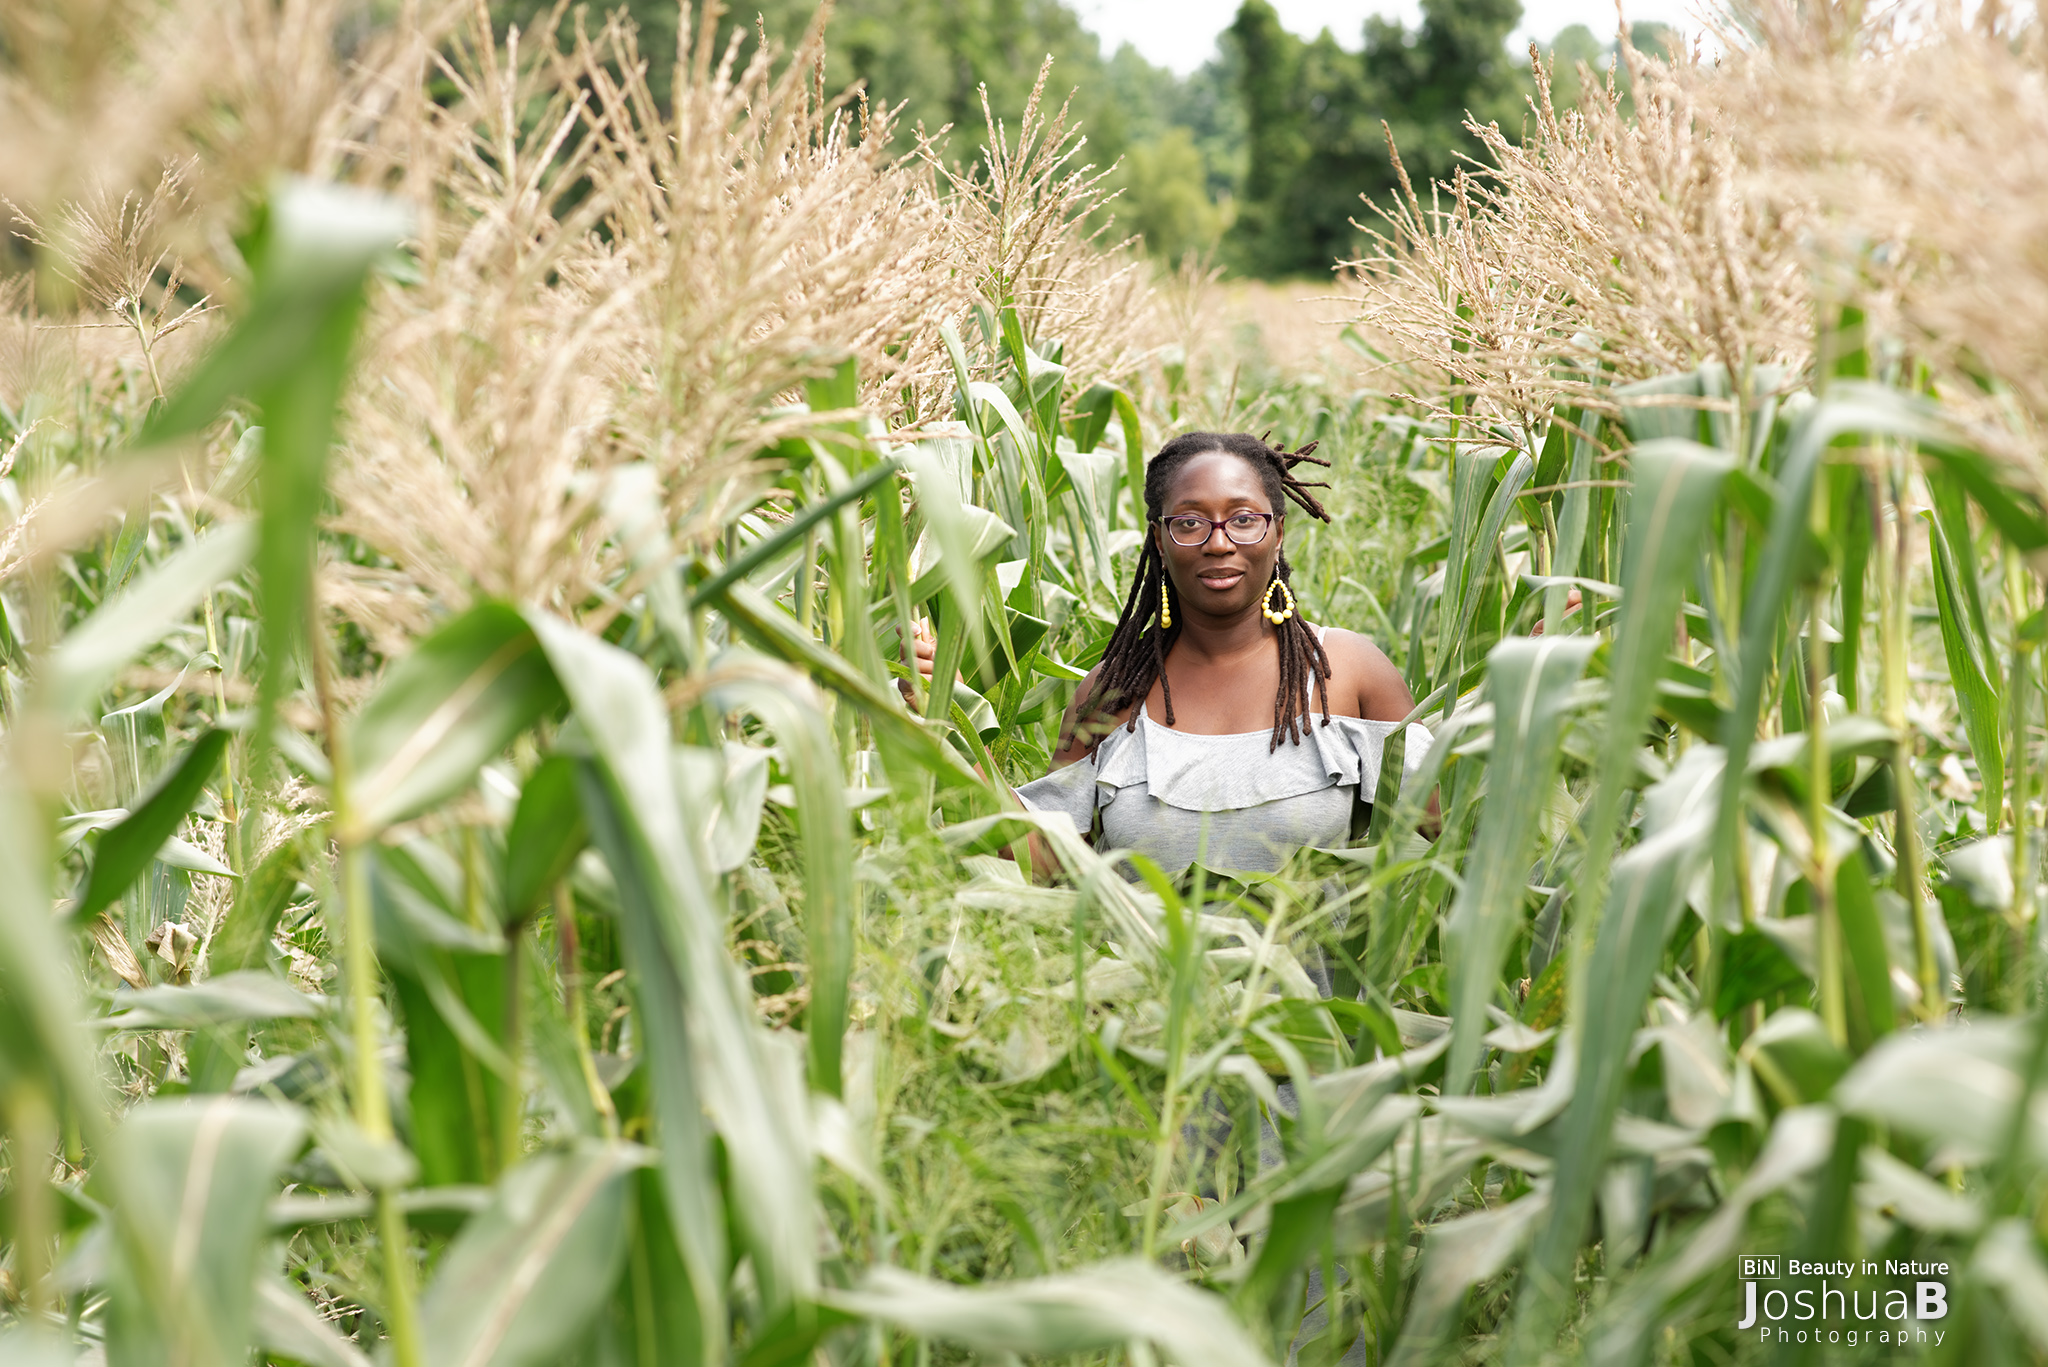 black woman dreadlocks cornfield